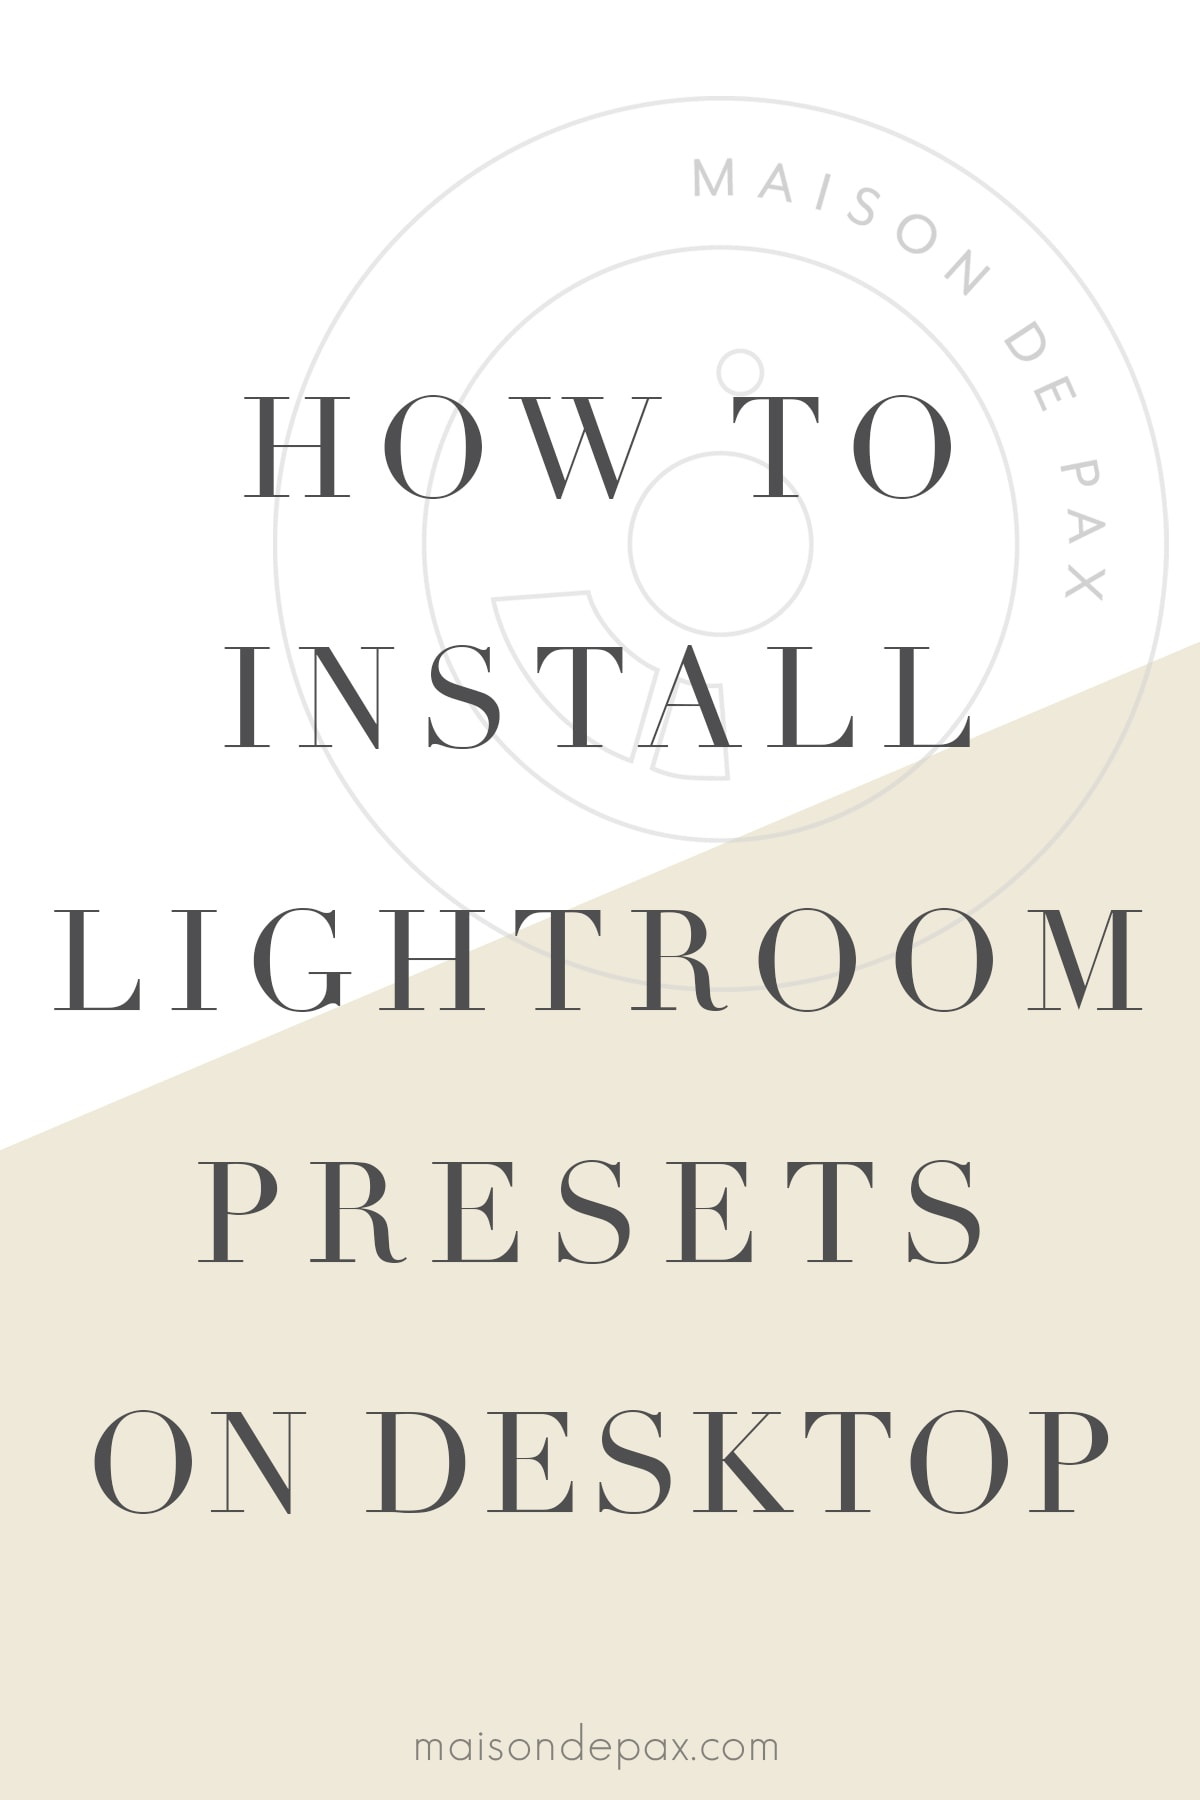 camera logo with text overlay: how to install lightroom presets on desktop | Maison de Pax